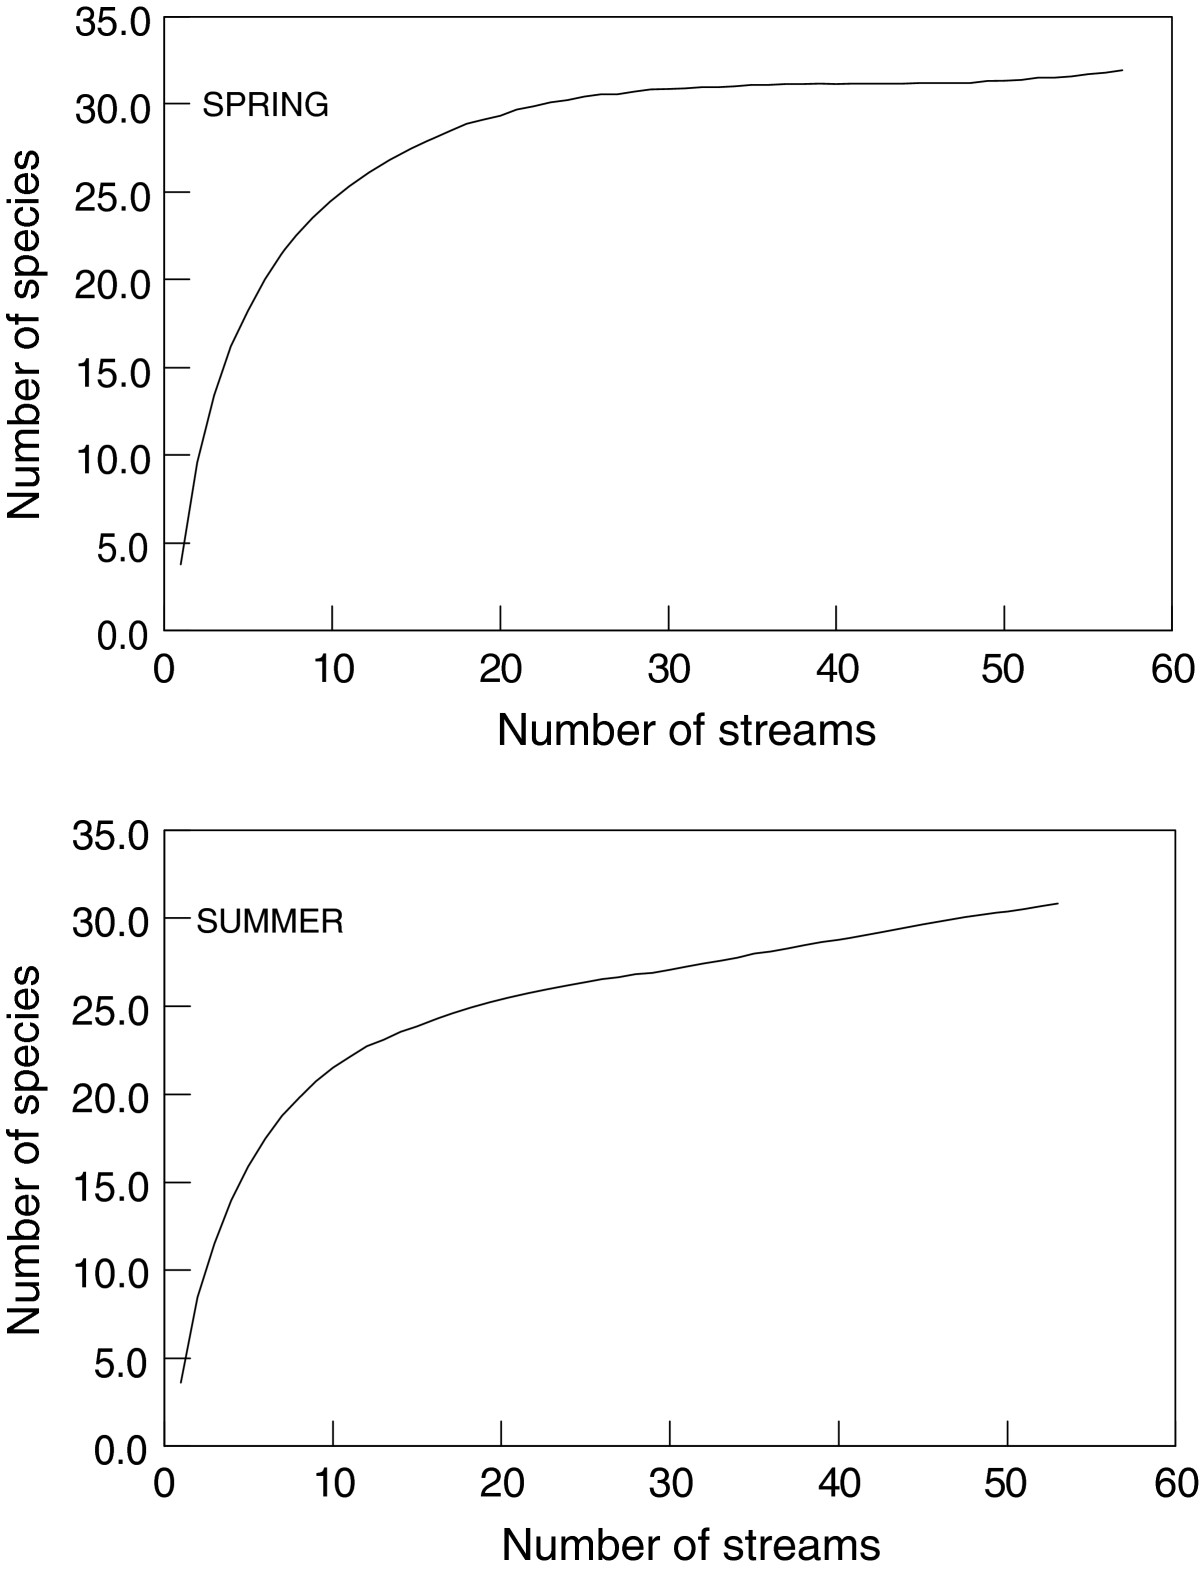 https://static-content.springer.com/image/art%3A10.1186%2F2046-9063-8-14/MediaObjects/12999_2012_Article_25_Fig1_HTML.jpg